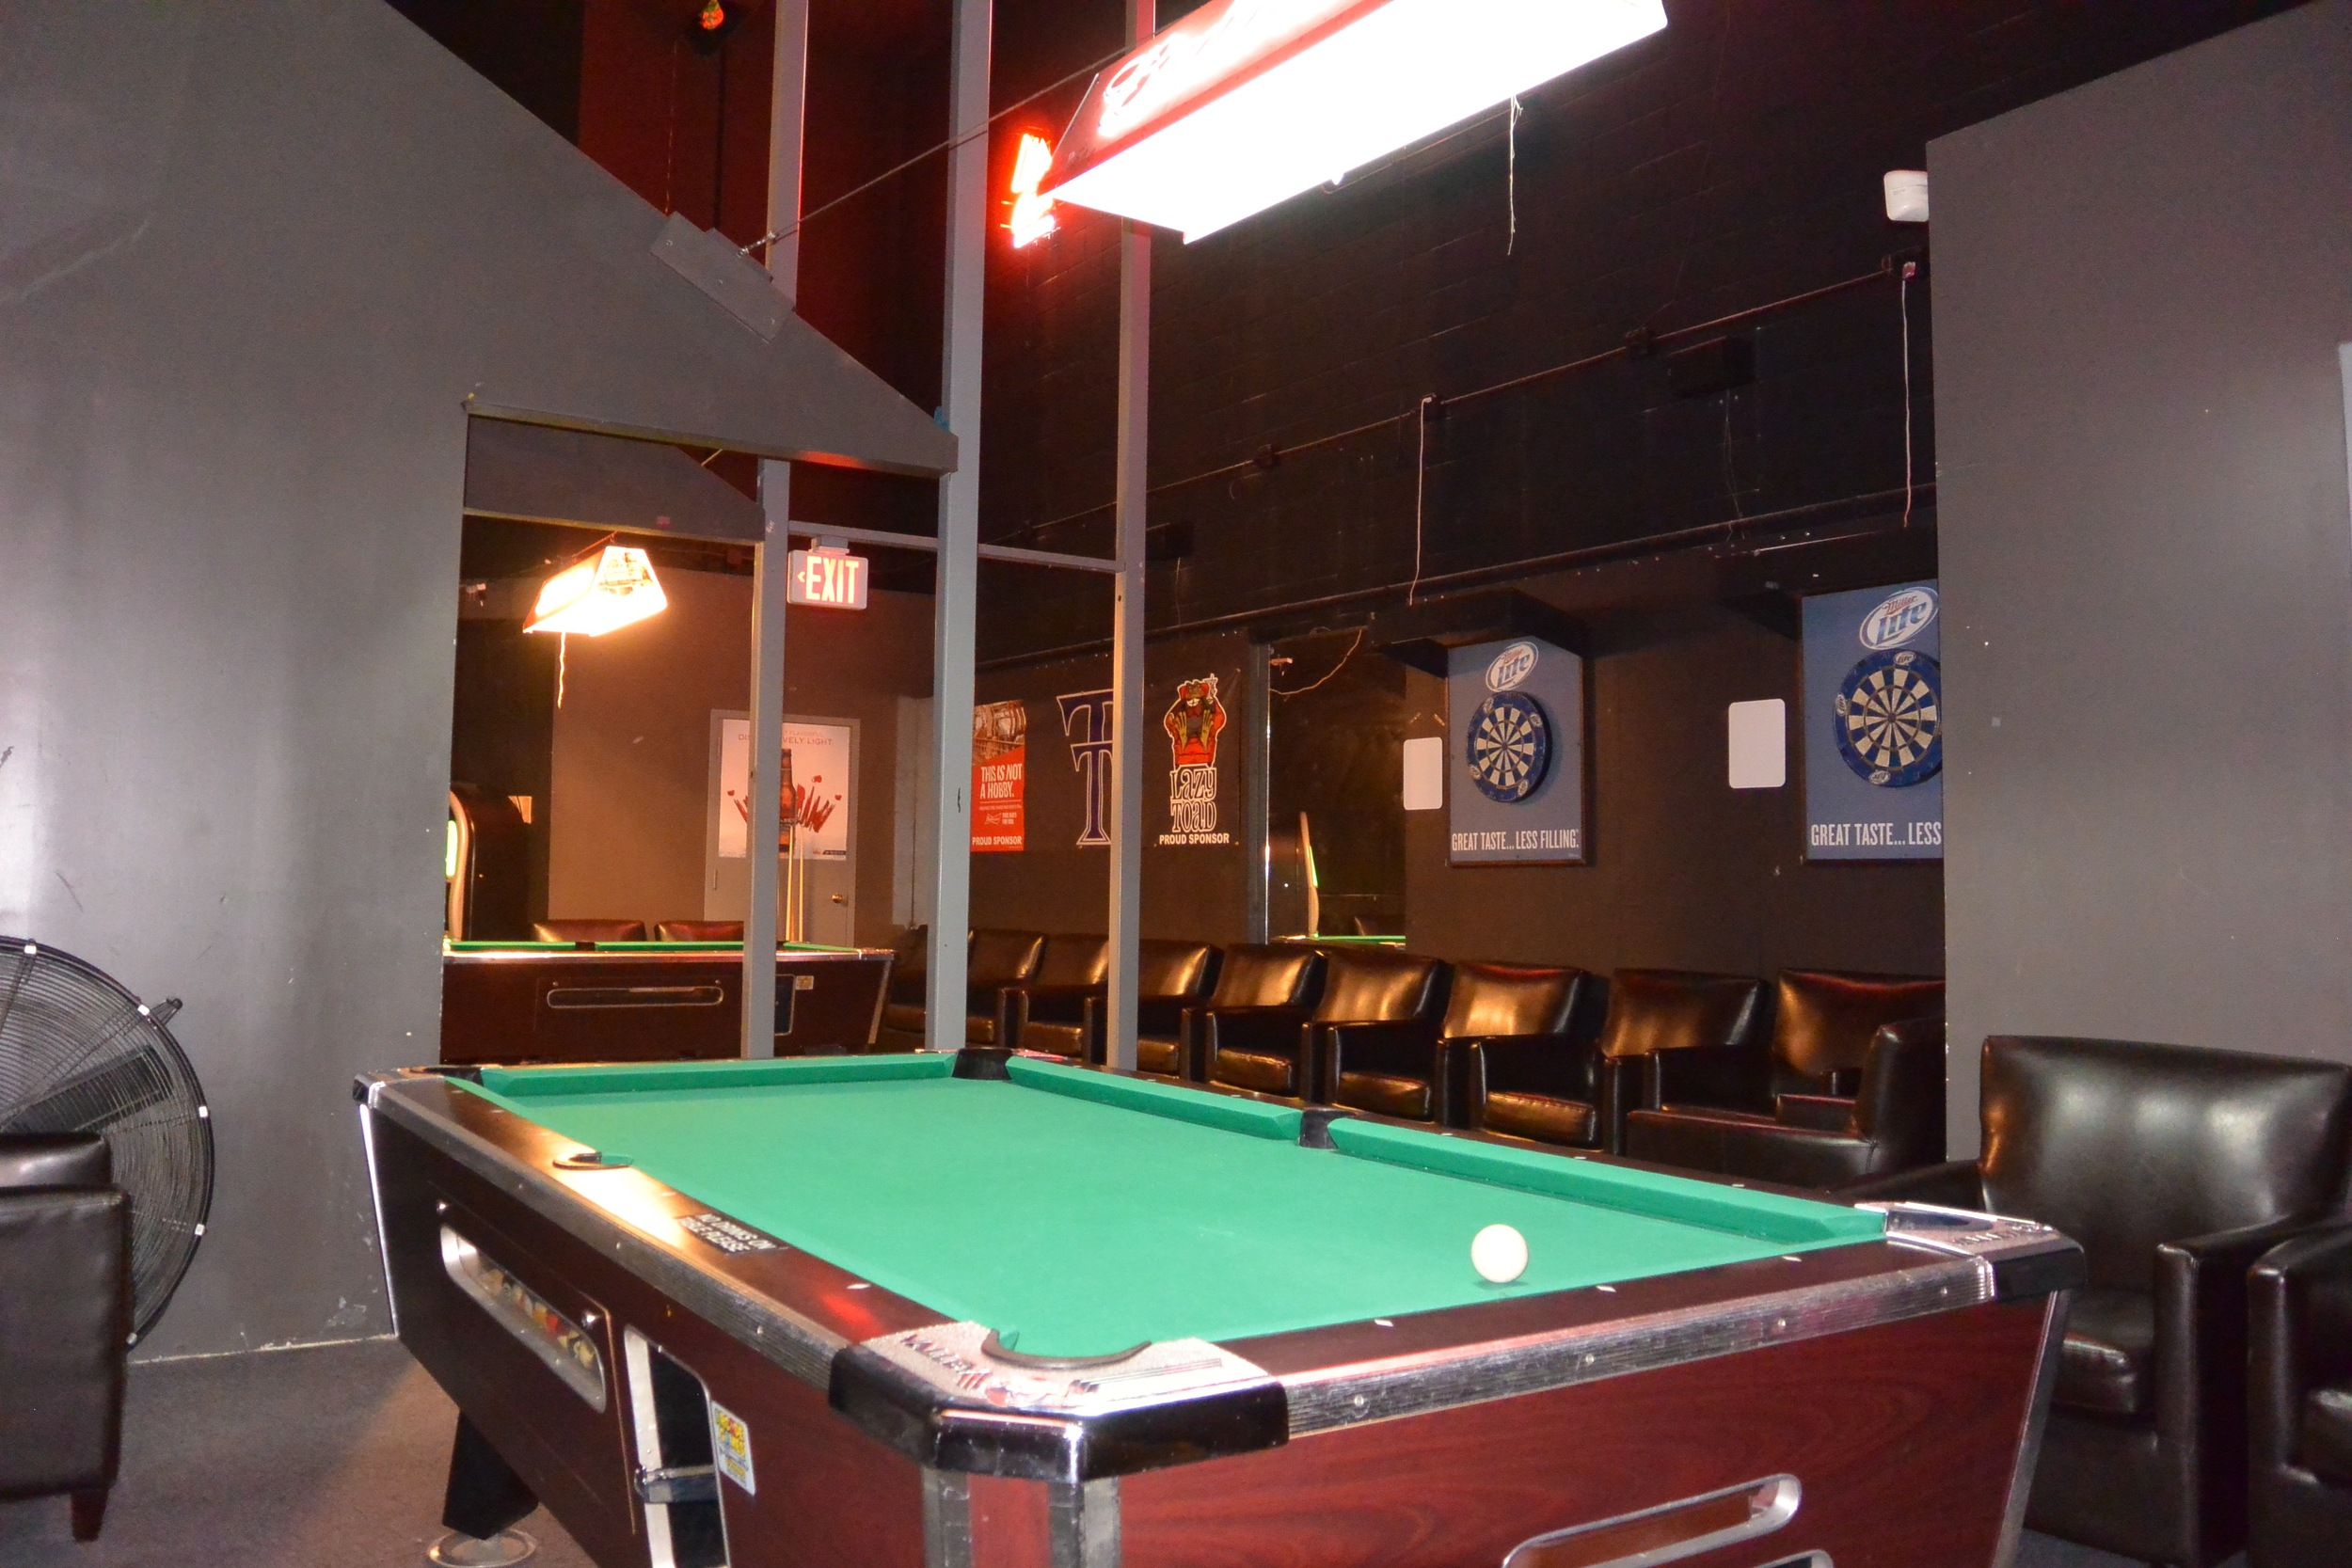 Ultra Lounge Seats 32, 2 Pool Tables, and 4 Plasma TV's